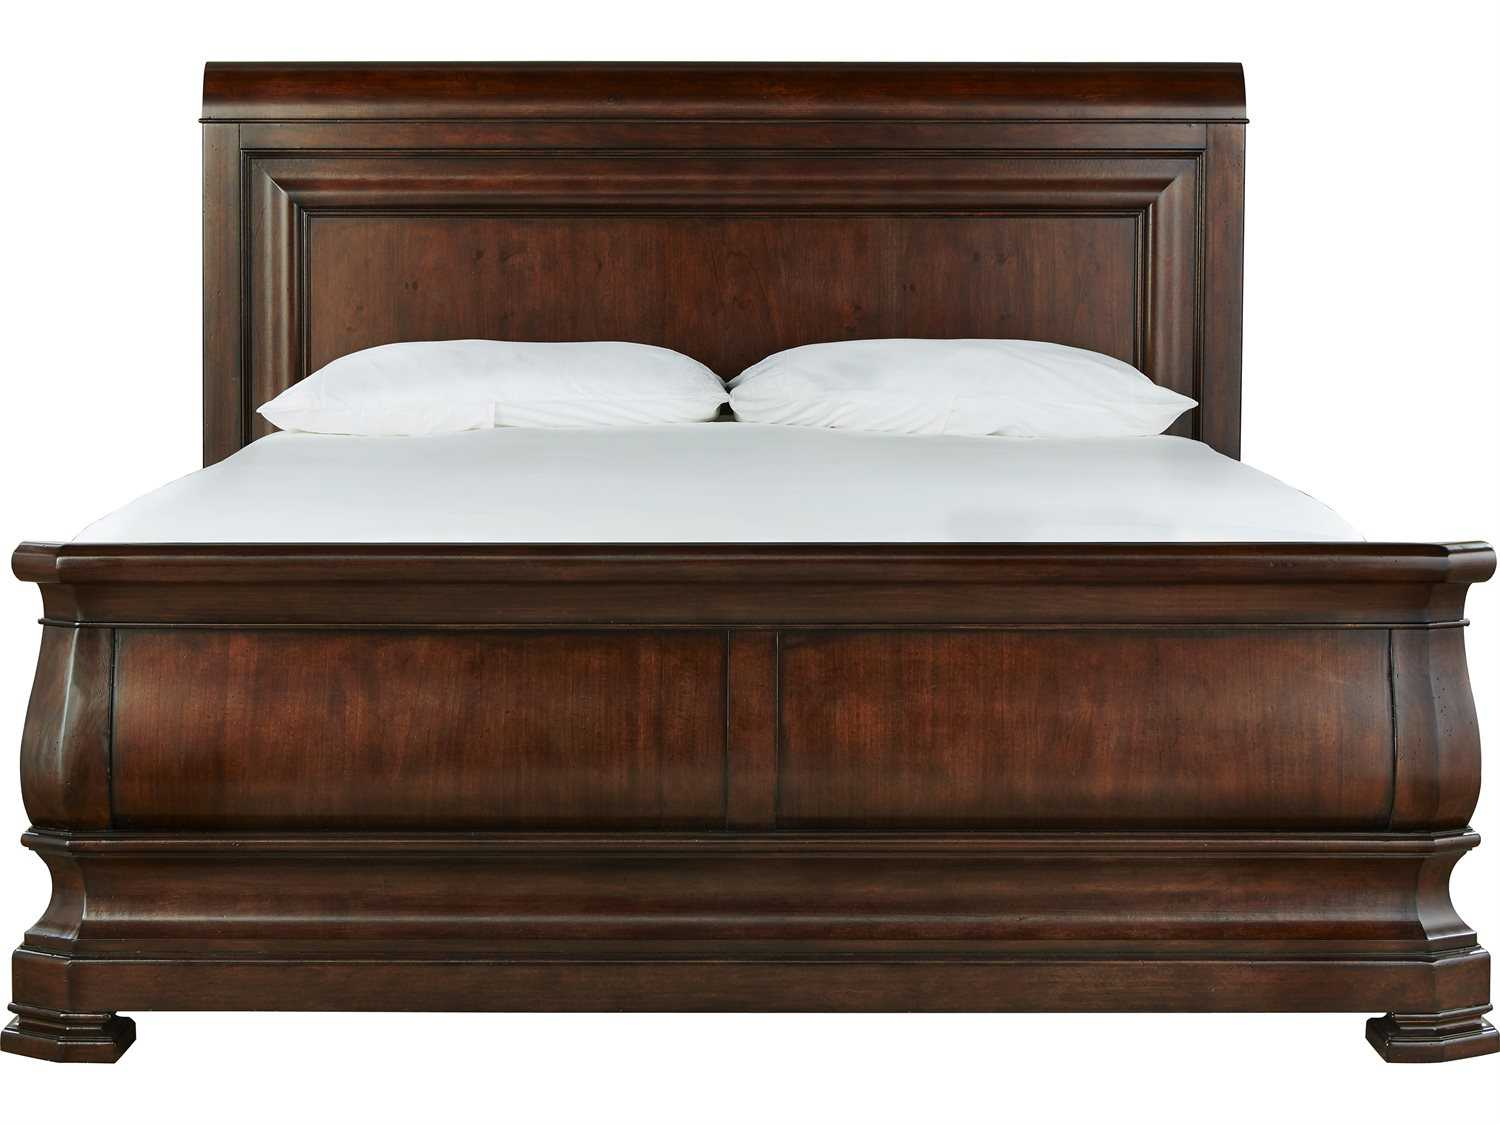 Universal Furniture Reprise Rustic Cherry California King Size Sleigh Bed 58177b